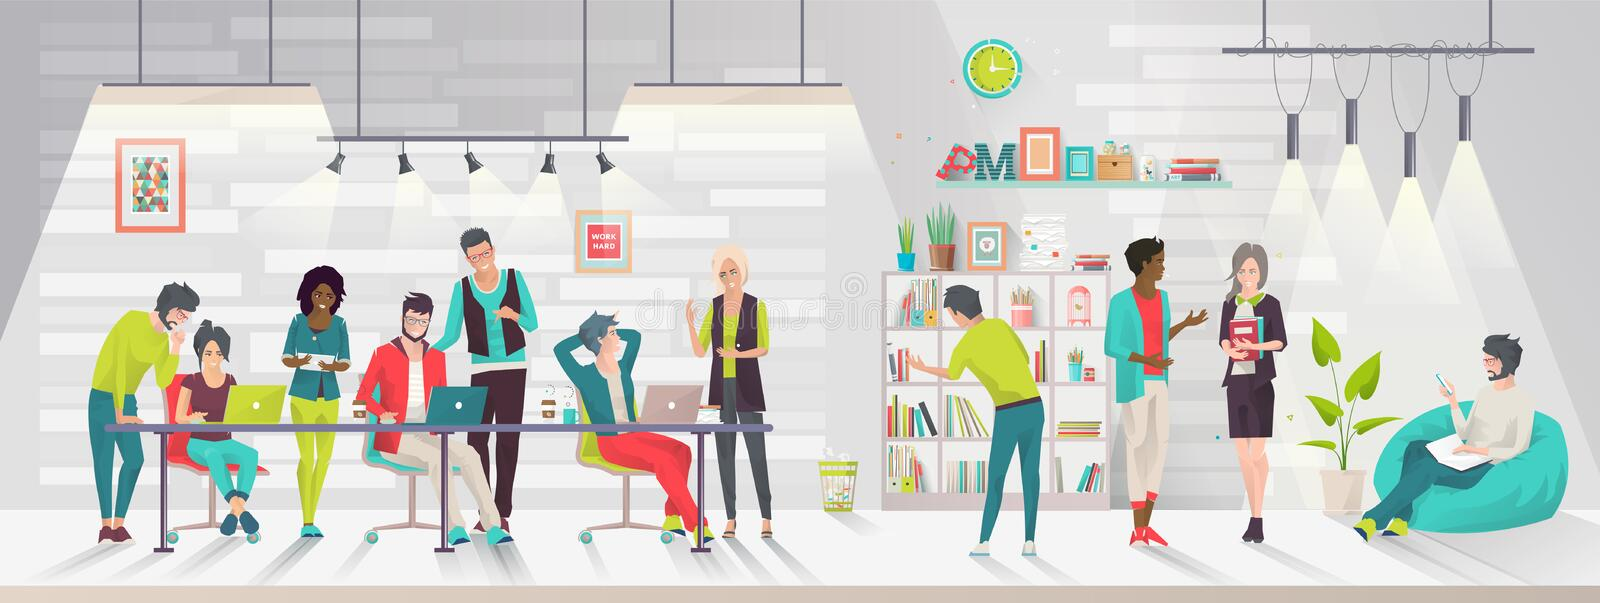 Concept of the coworking center. stock illustration